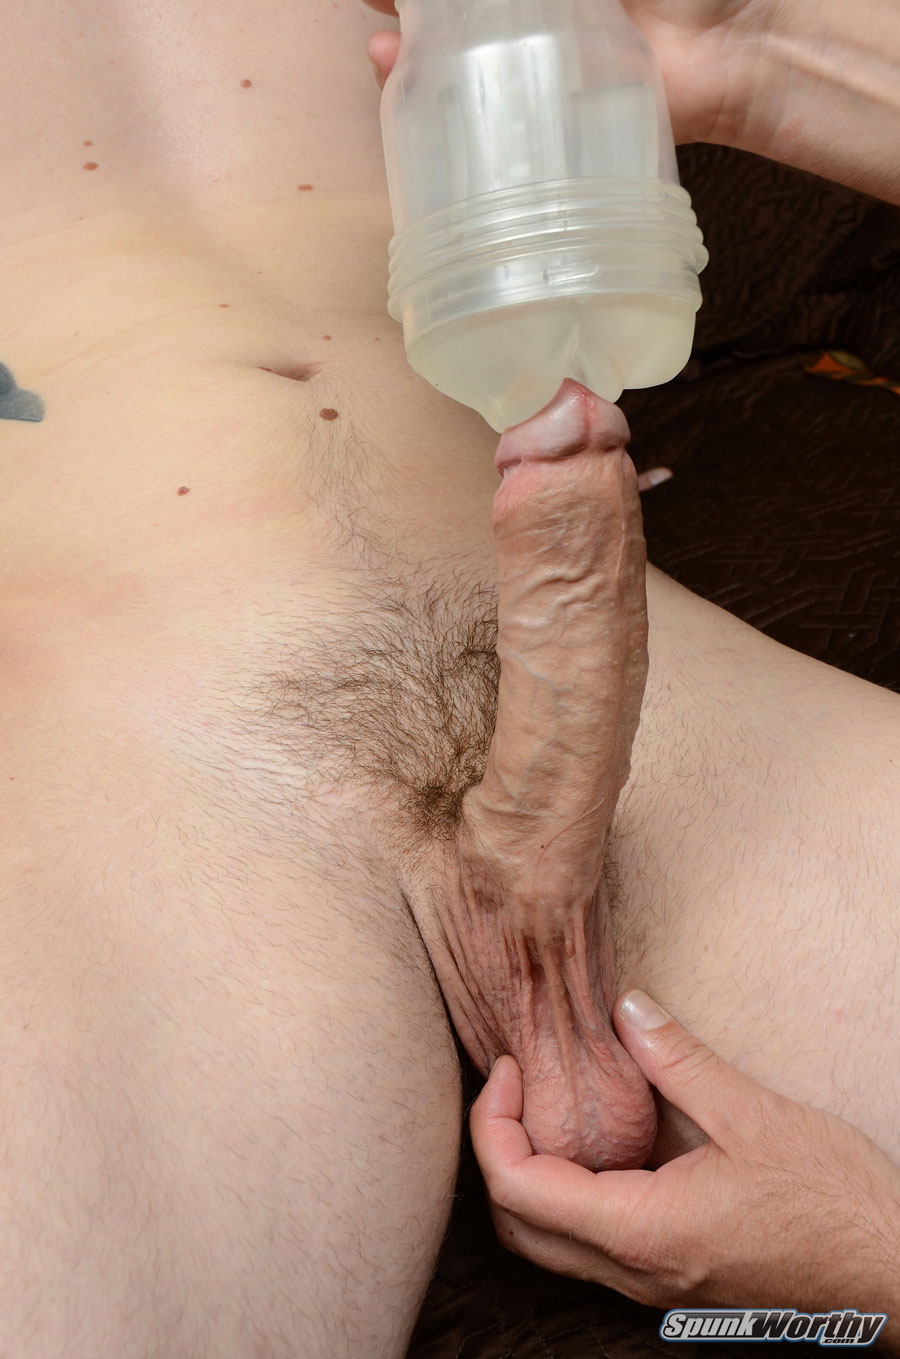 SpunkWorthy-Eli-Straight-Marine-Gets-A-Hand-Job-Fleshlight-from-A-guy-Amateur-Gay-Porn-11 Straight Marine Gets His First Hand Job From Another Guy